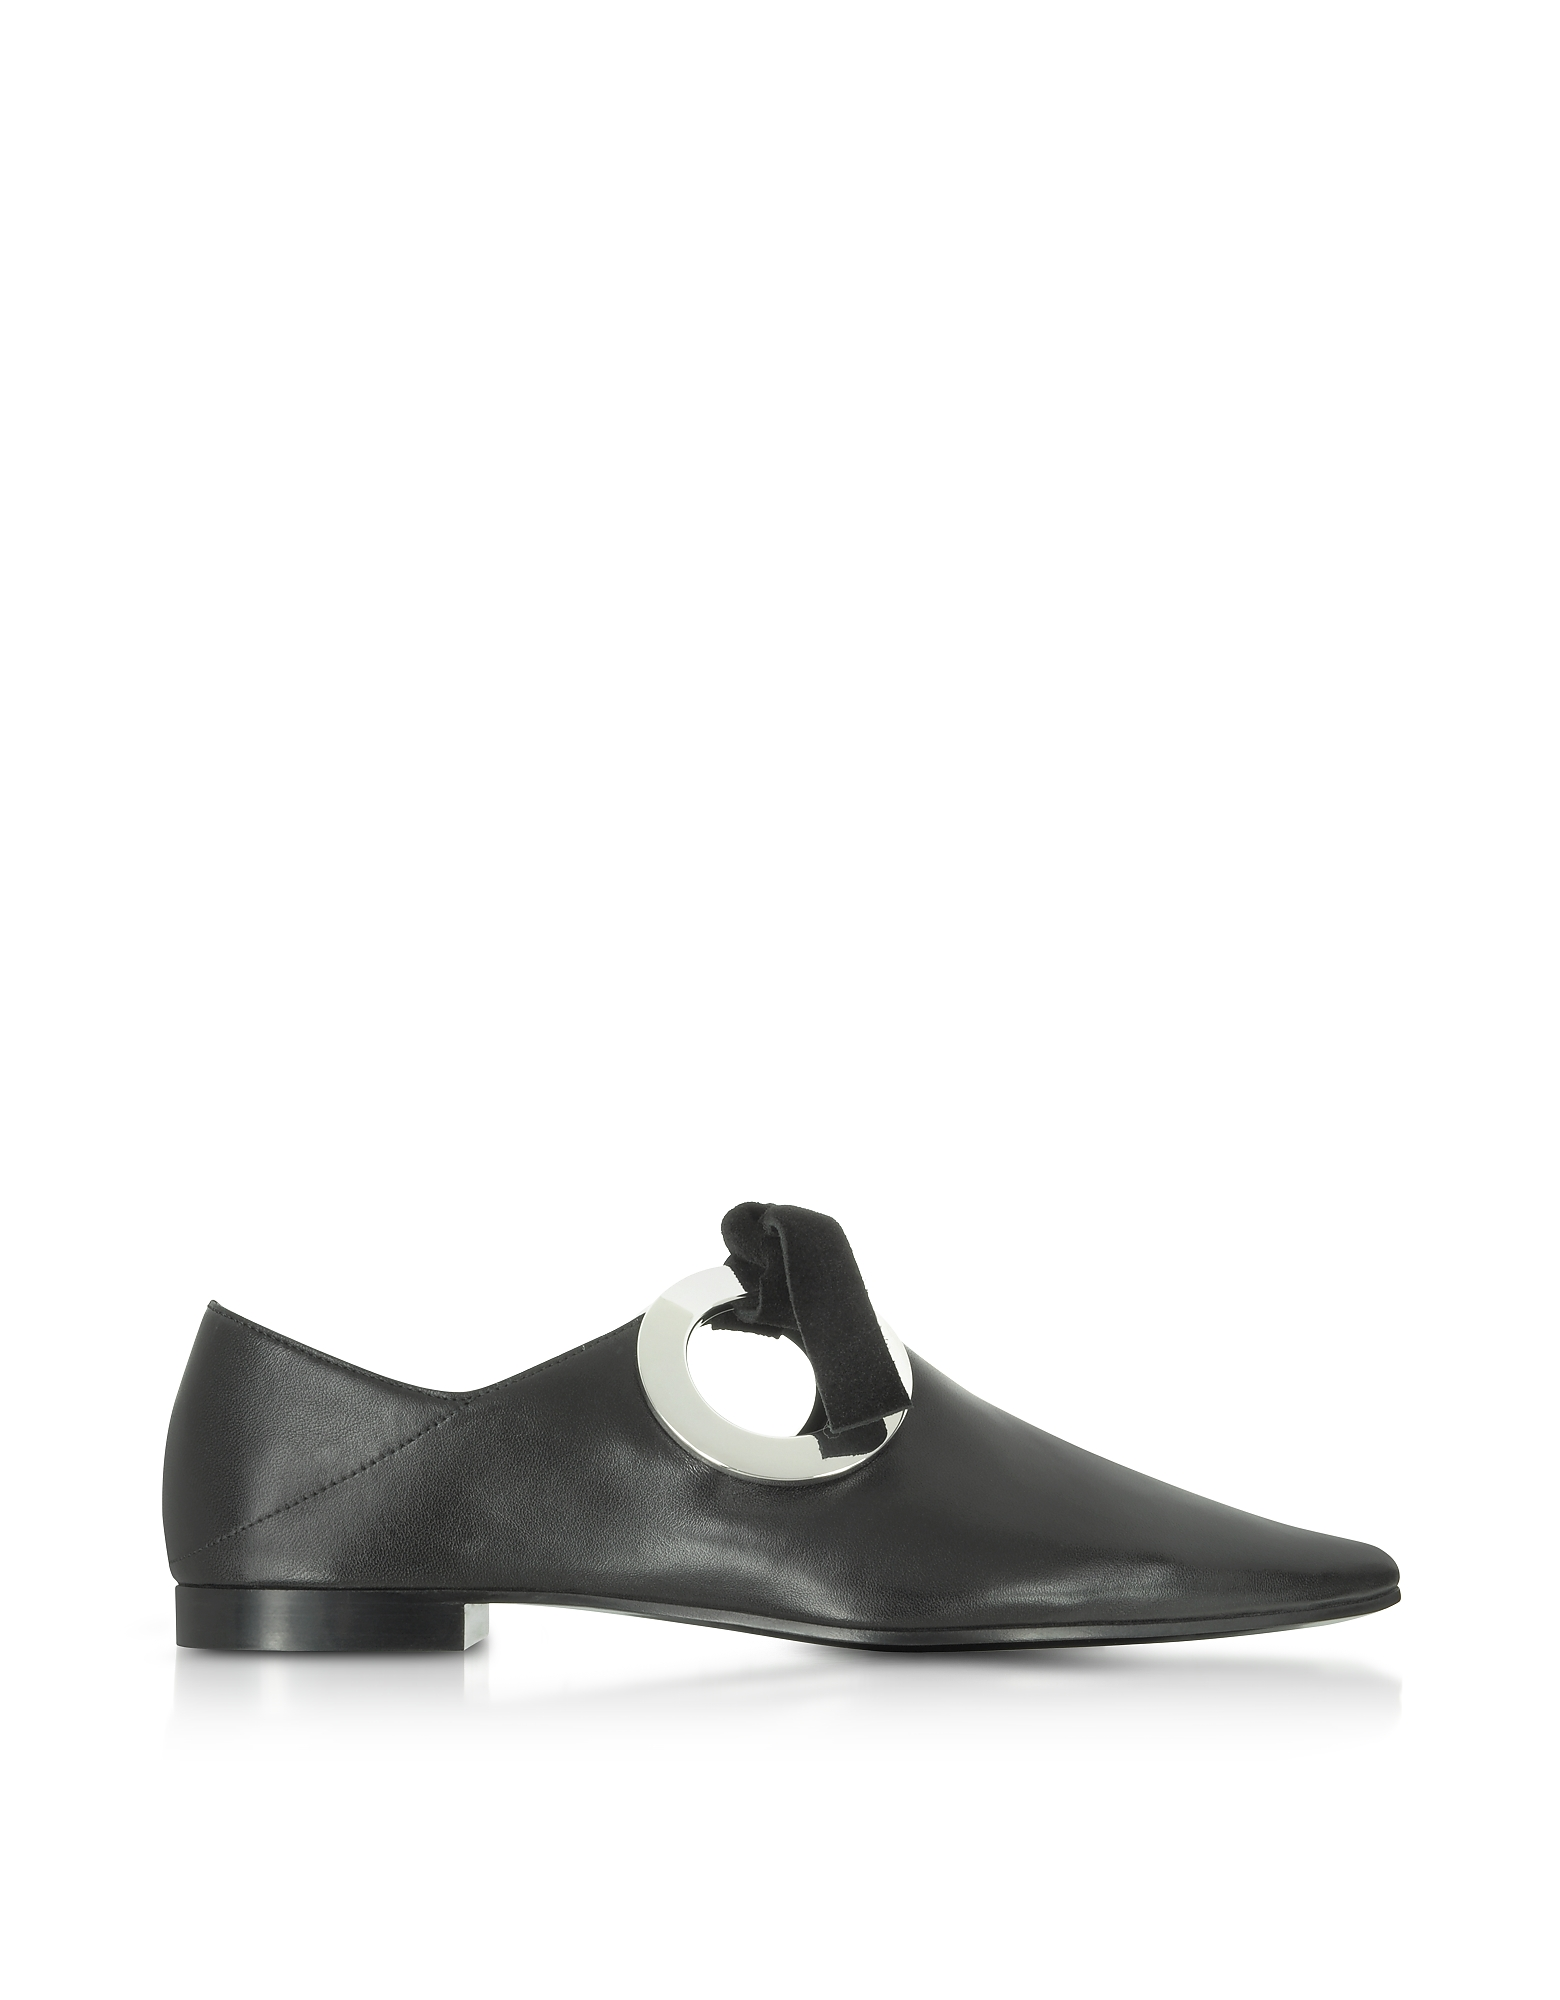 Proenza Schouler Shoes, Black Leather and Suede Flat Mule